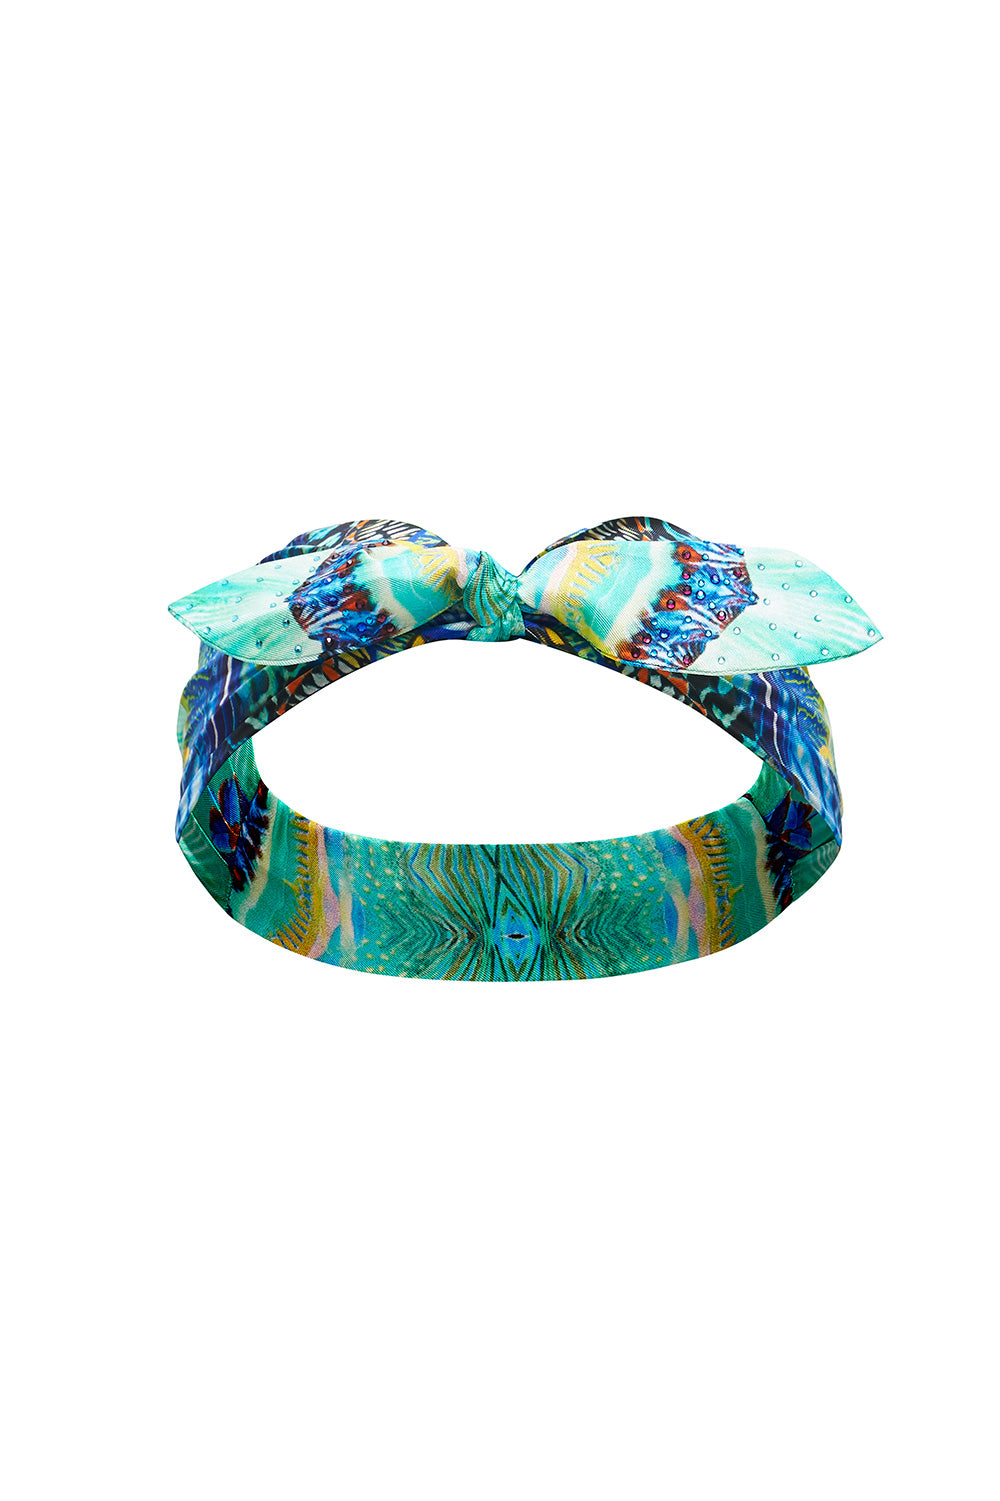 HEADBAND WITH TIE REEF WARRIOR